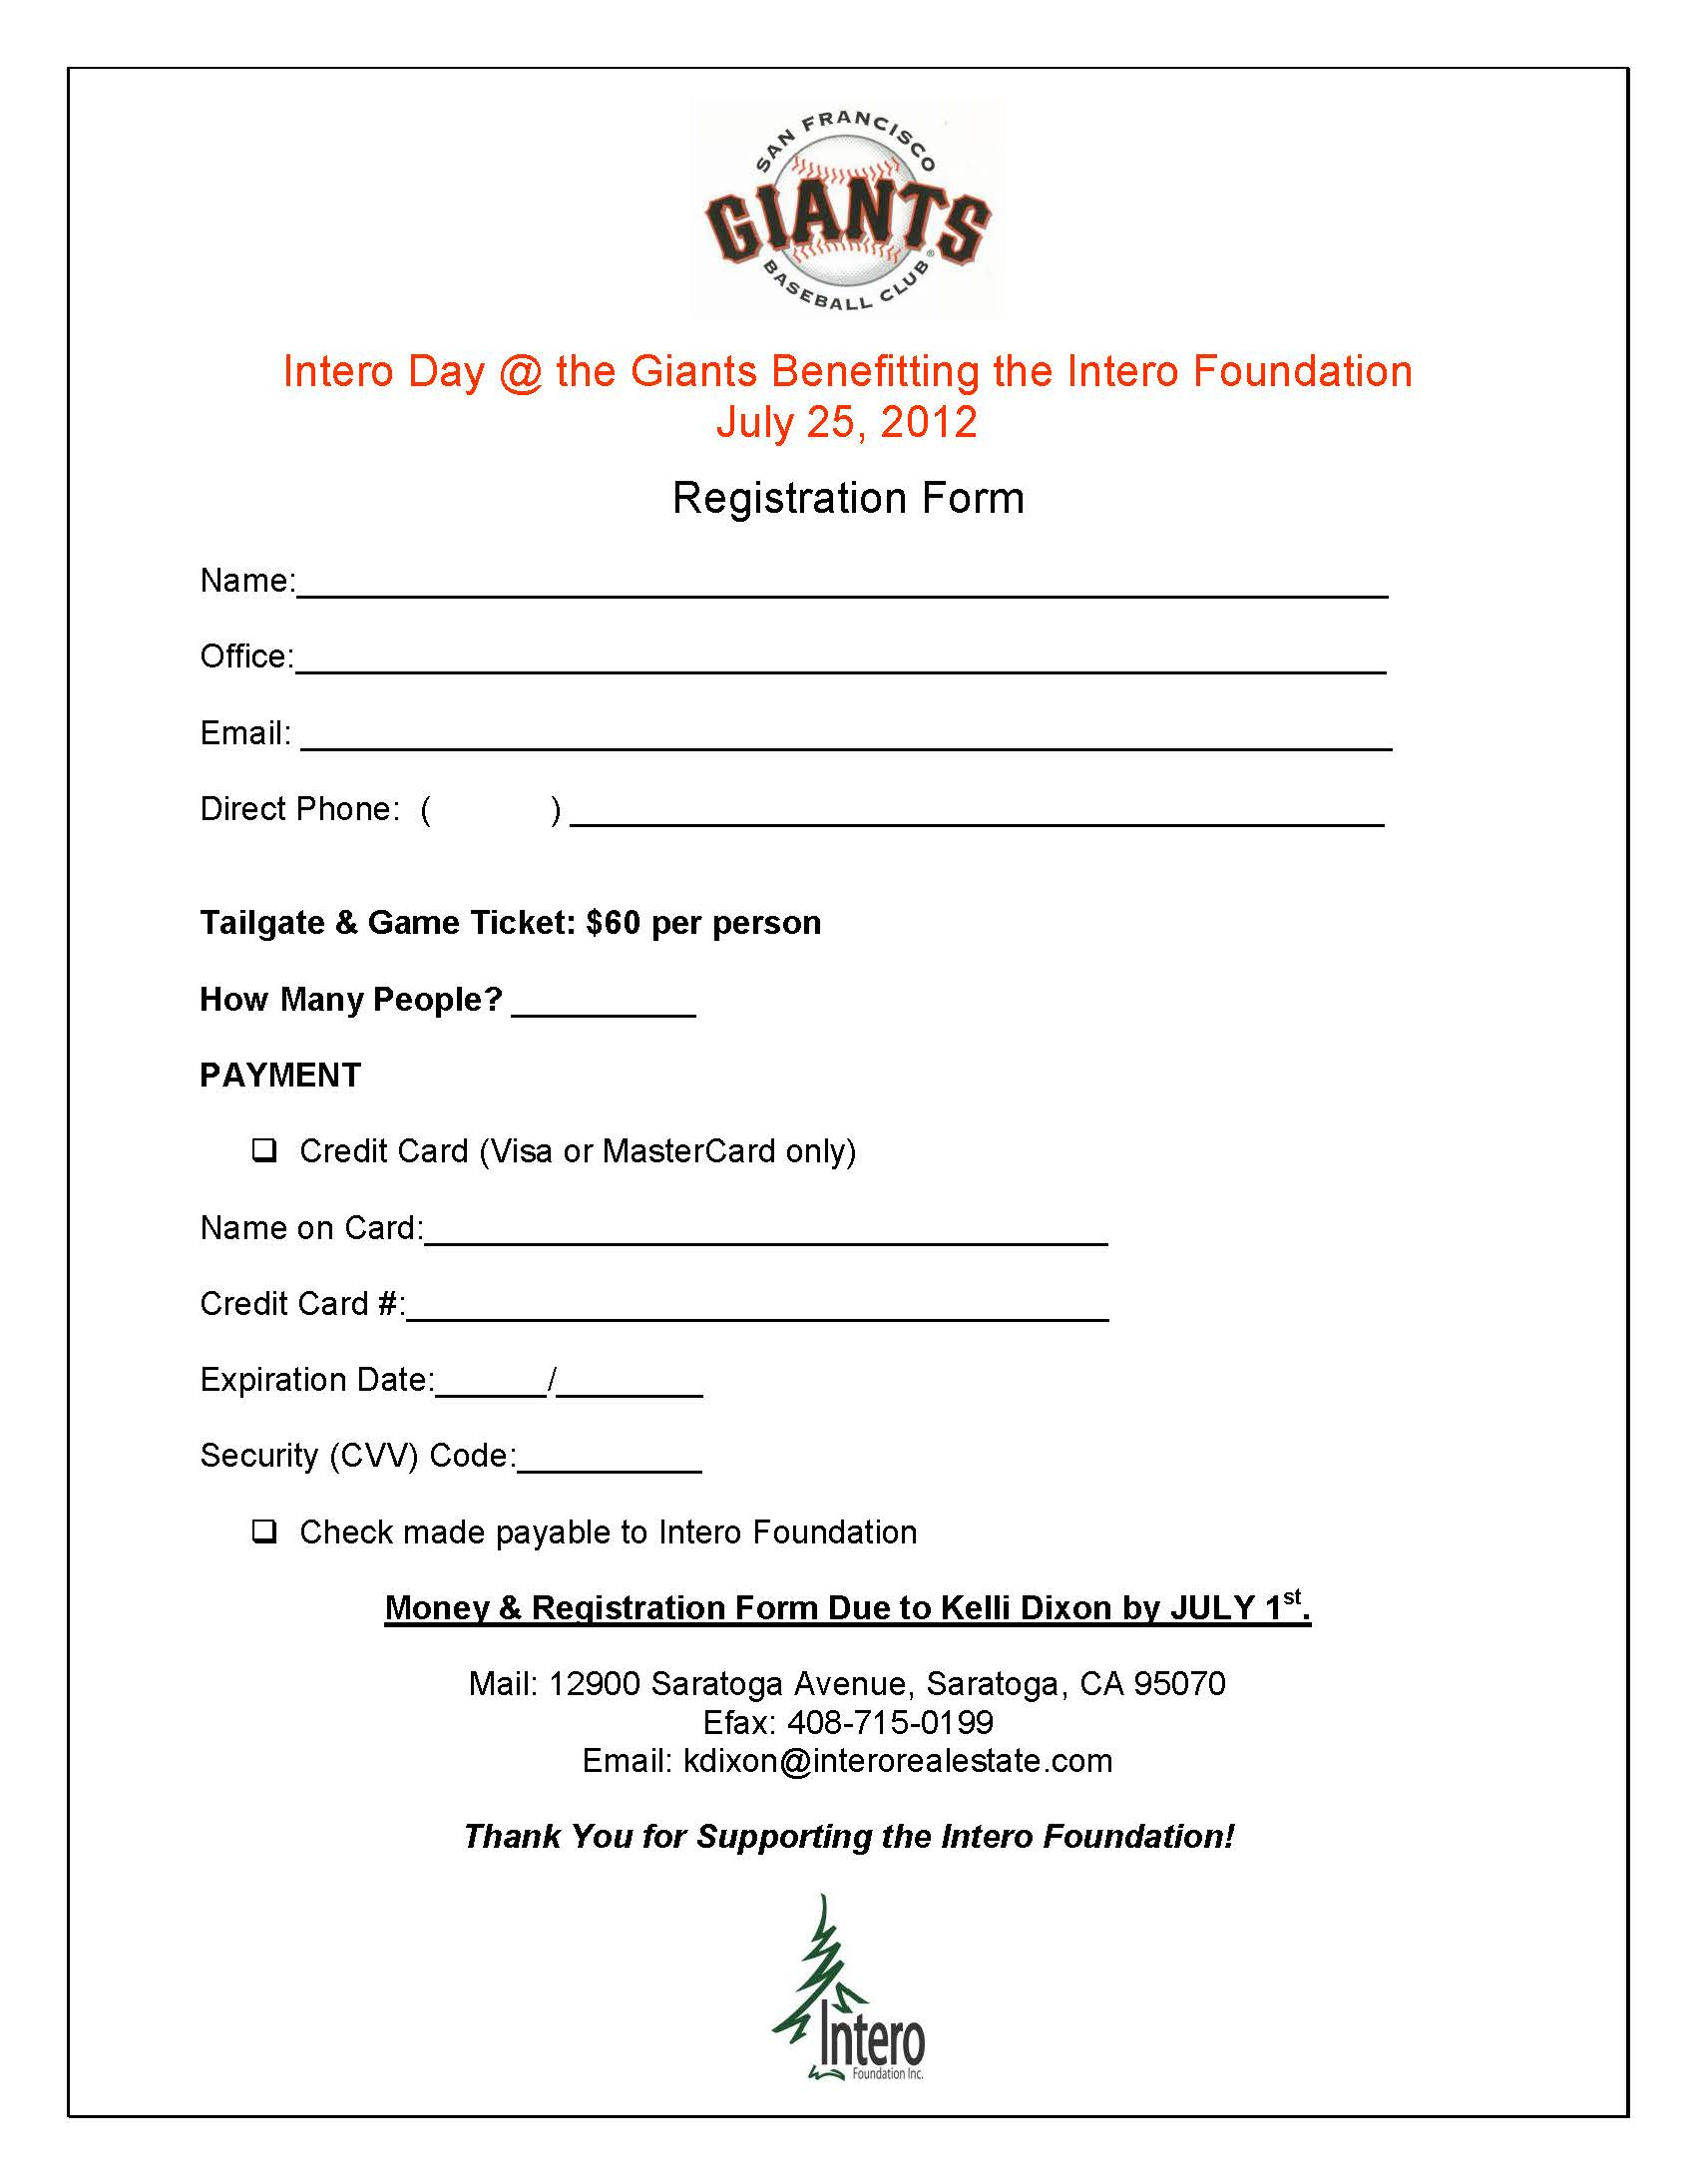 Intero Giants Game Registration Form